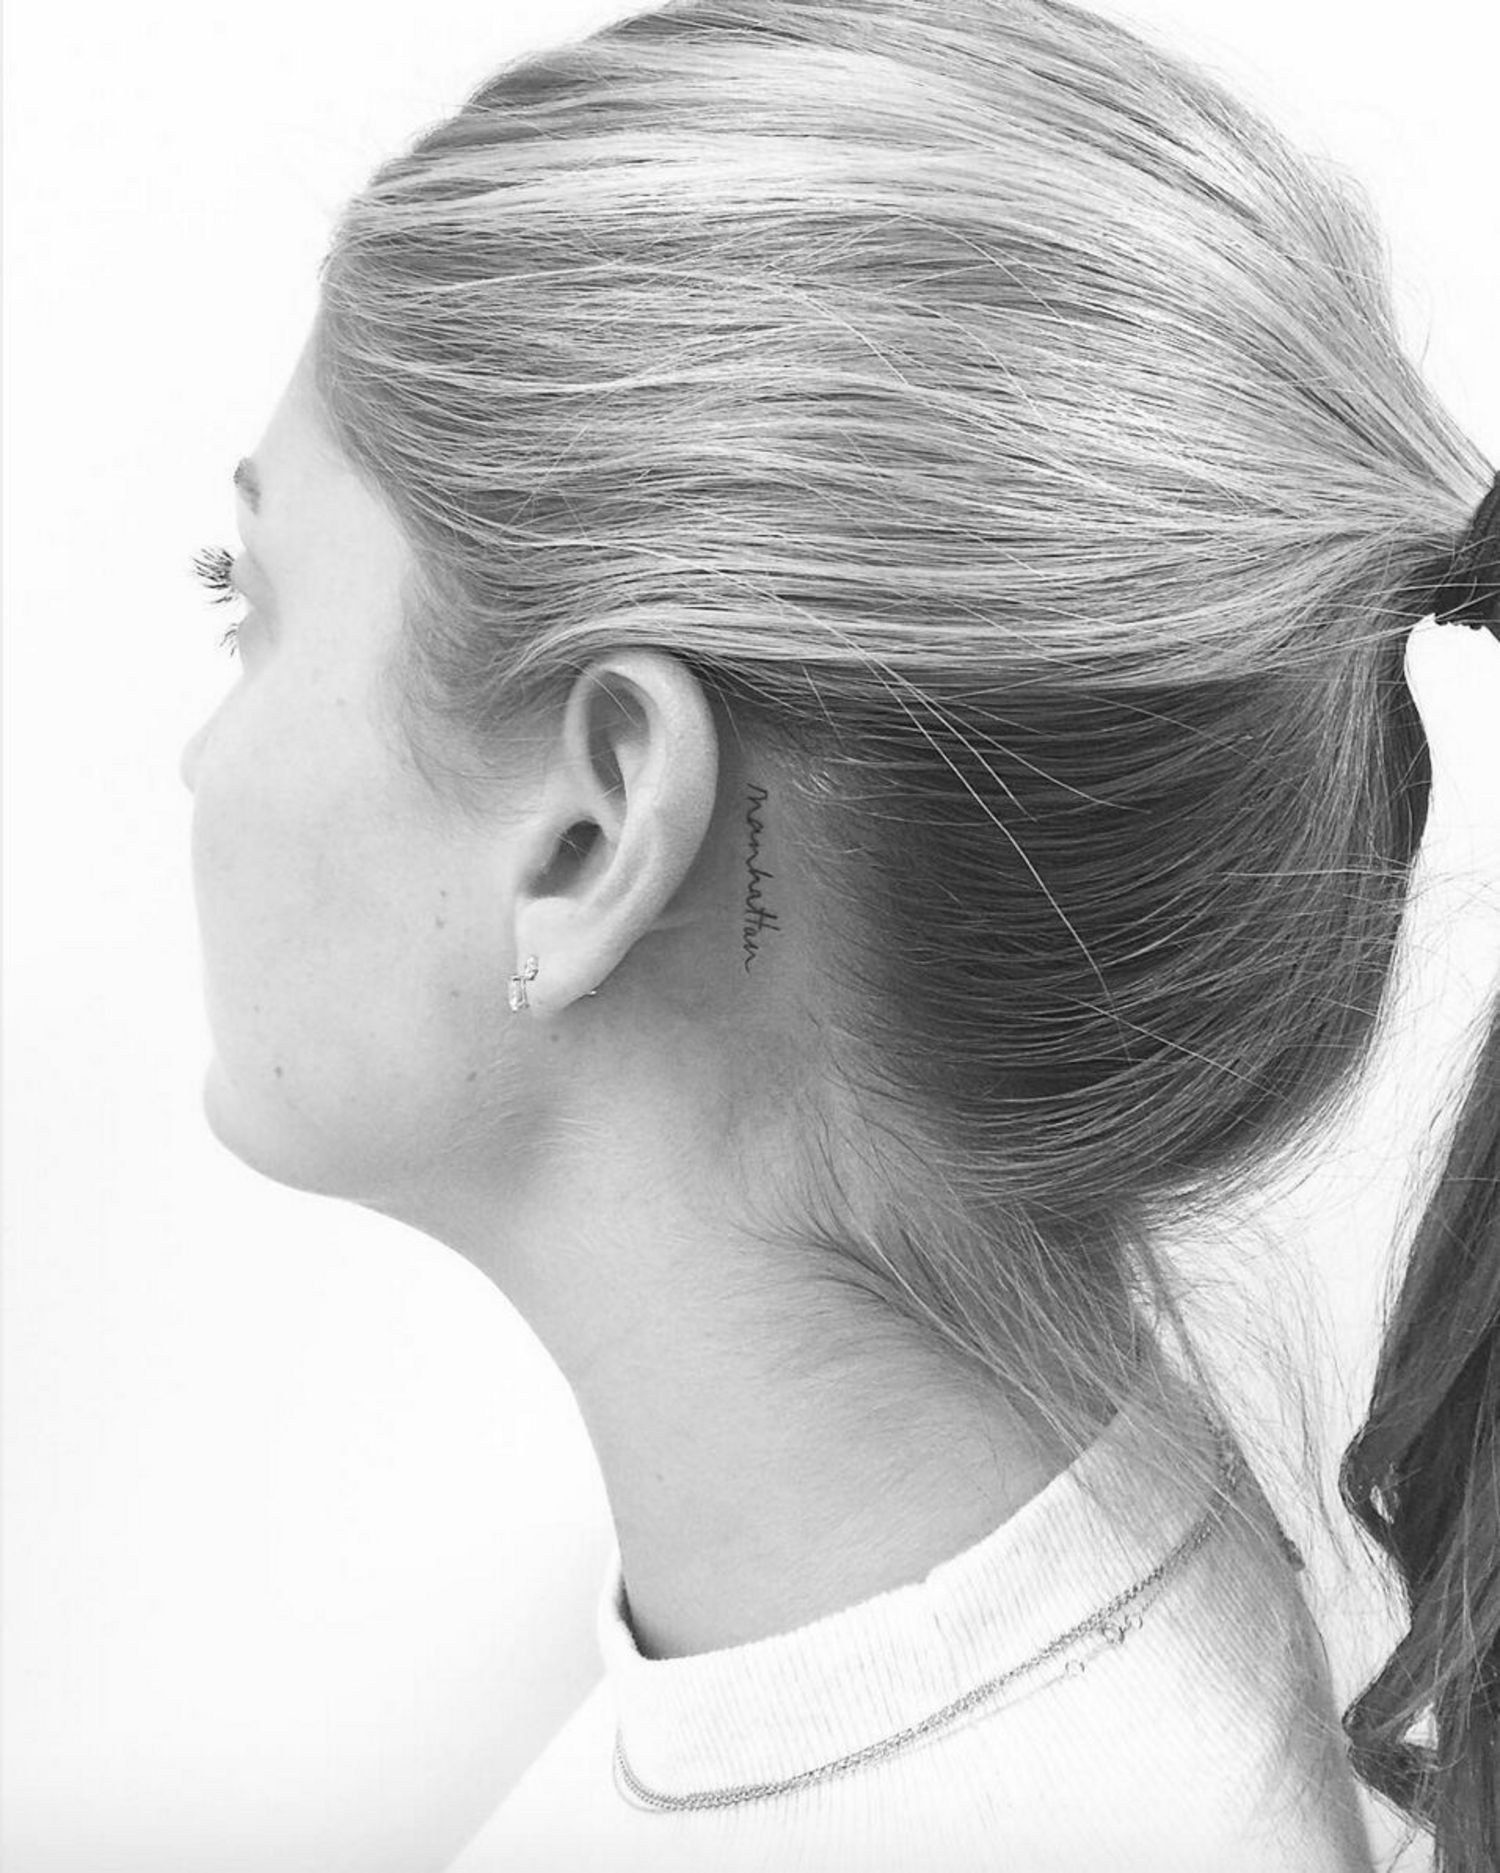 46 tiny tattoo ideas even the most needleshy cant resist